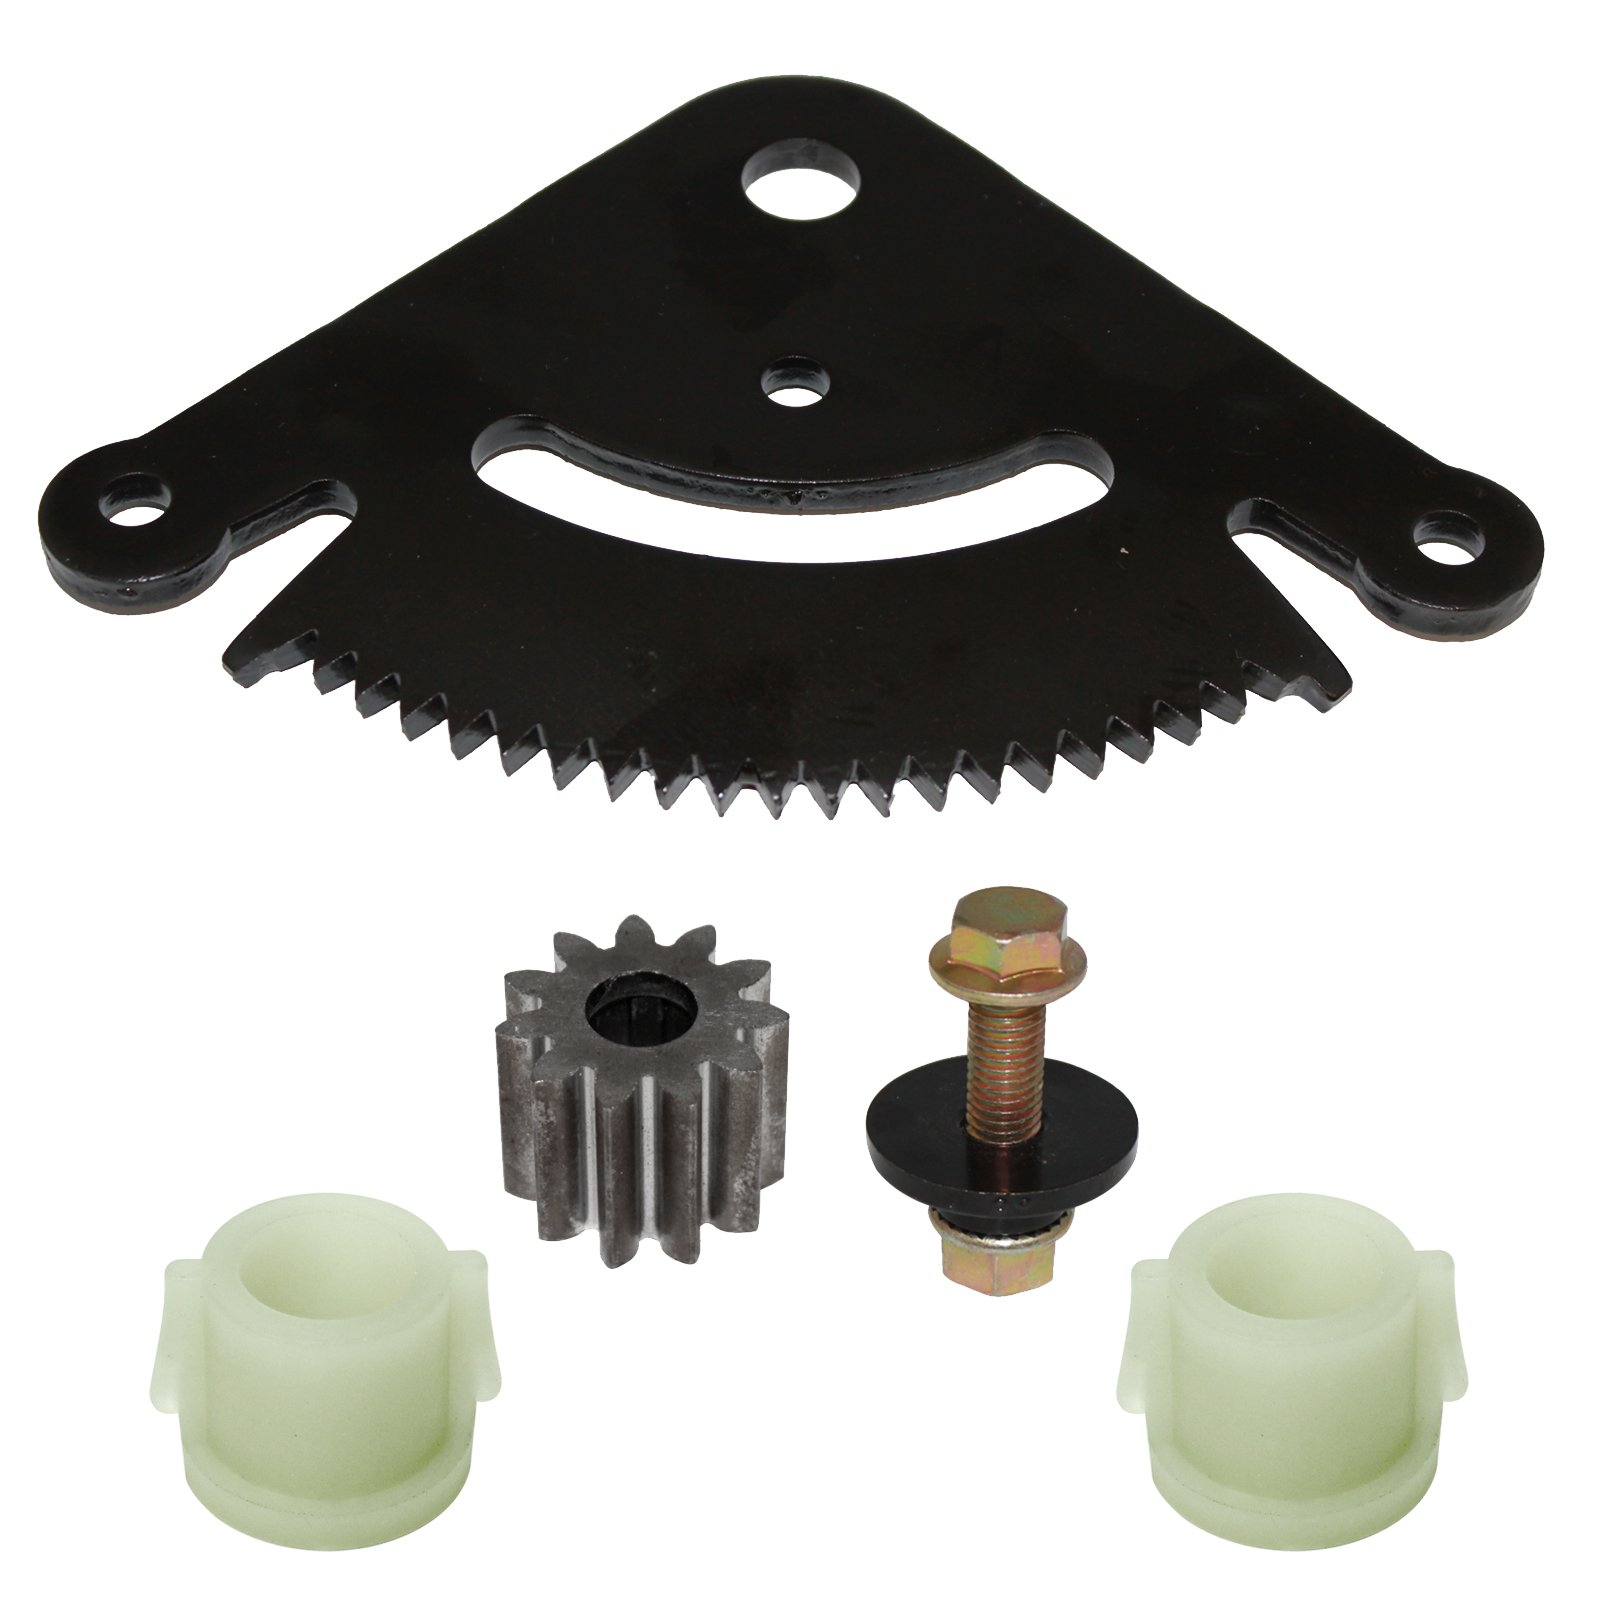 CALTRIC STEERING SECTOR & PINION GEAR w/BUSHINGS FIT JOHN DEERE 102 105 115 125 135 145 by Caltric